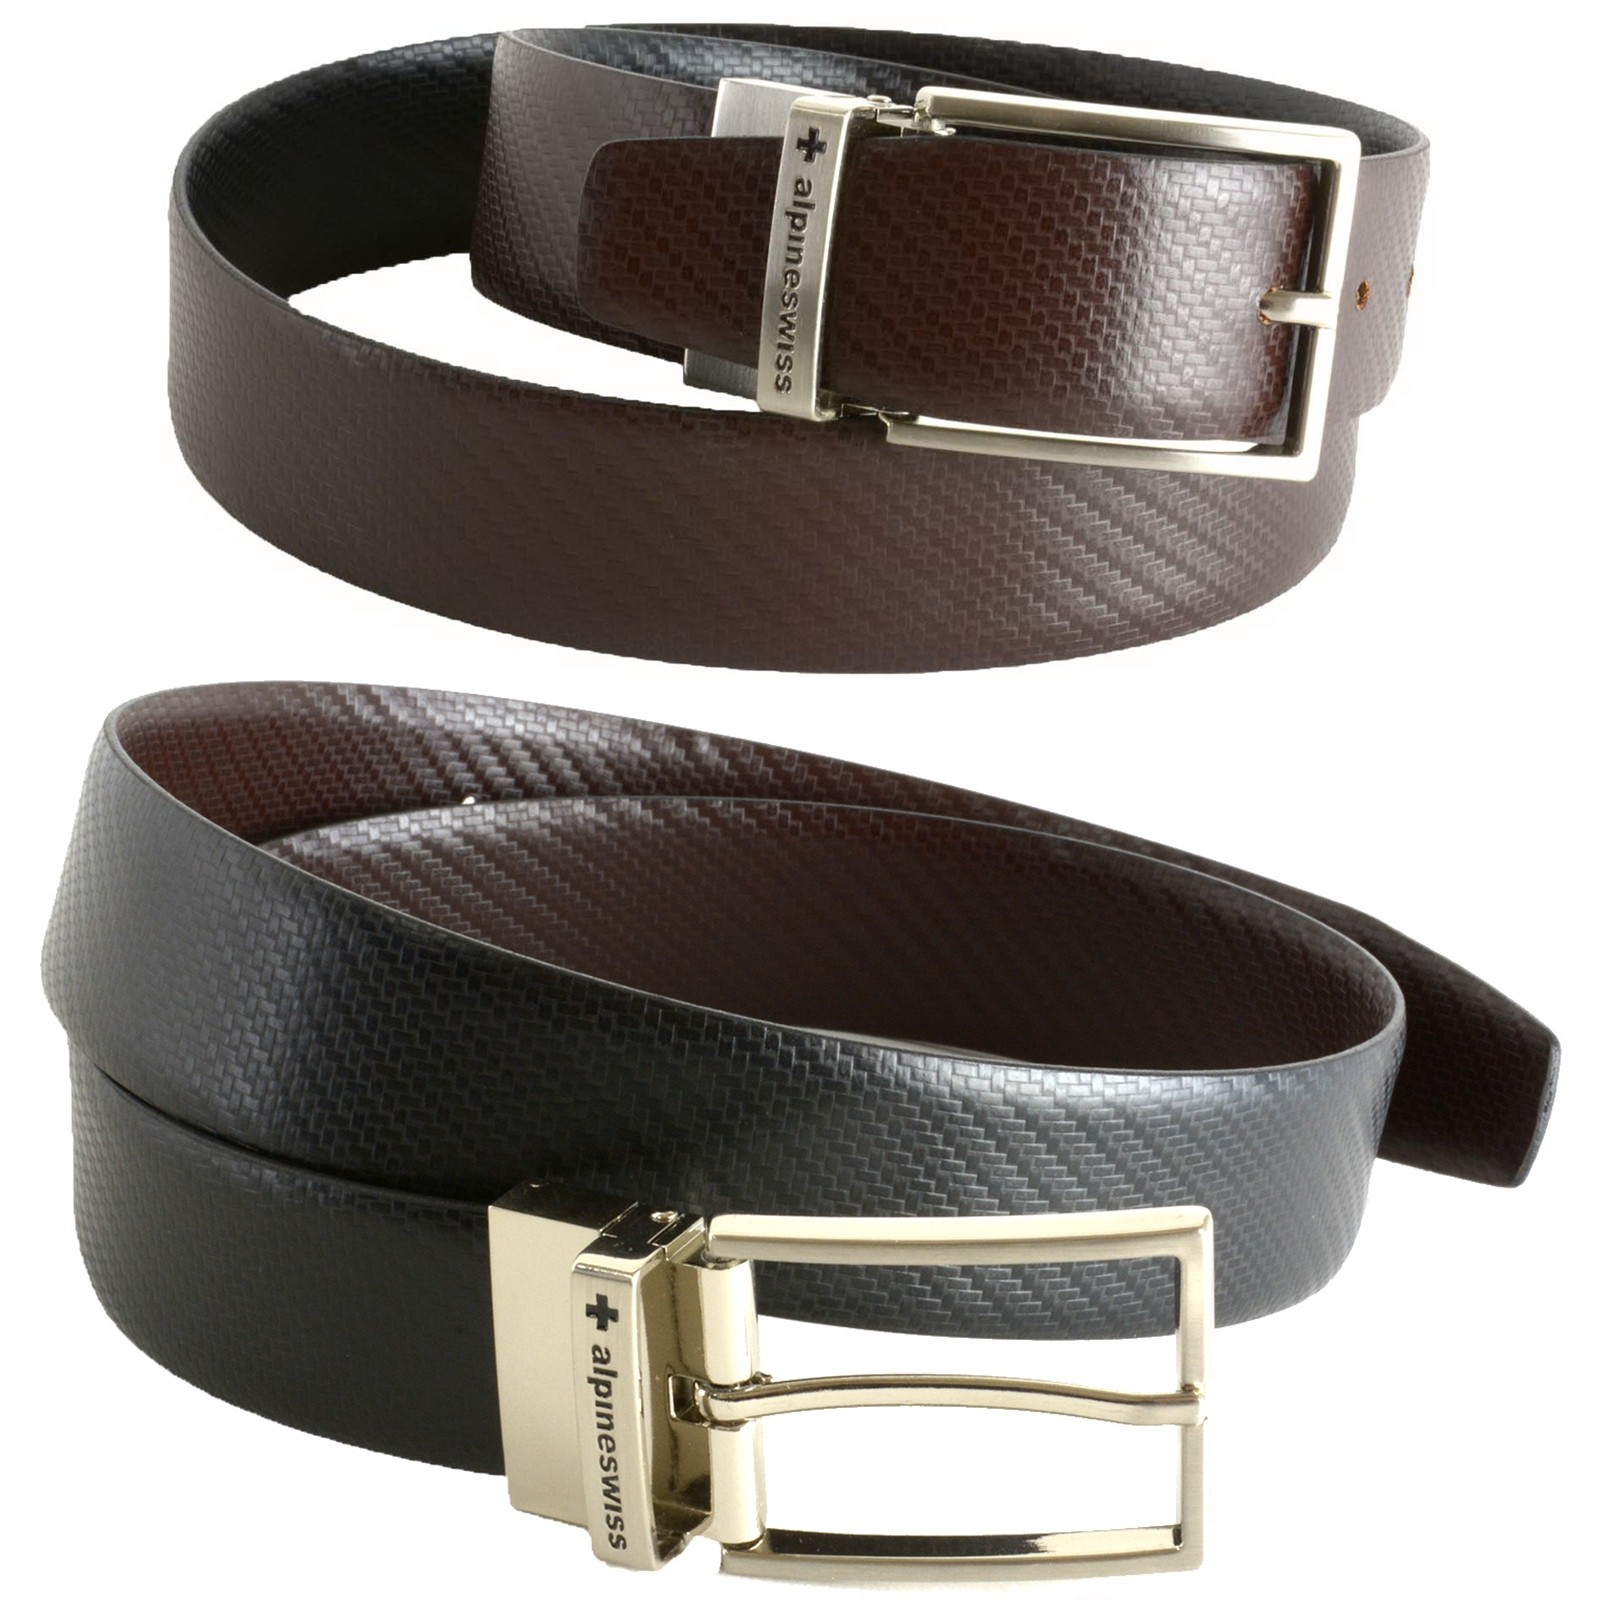 Alpine Swiss Mens Brown/Black Reversible Leather Dress Belt (Pattern/Solid)